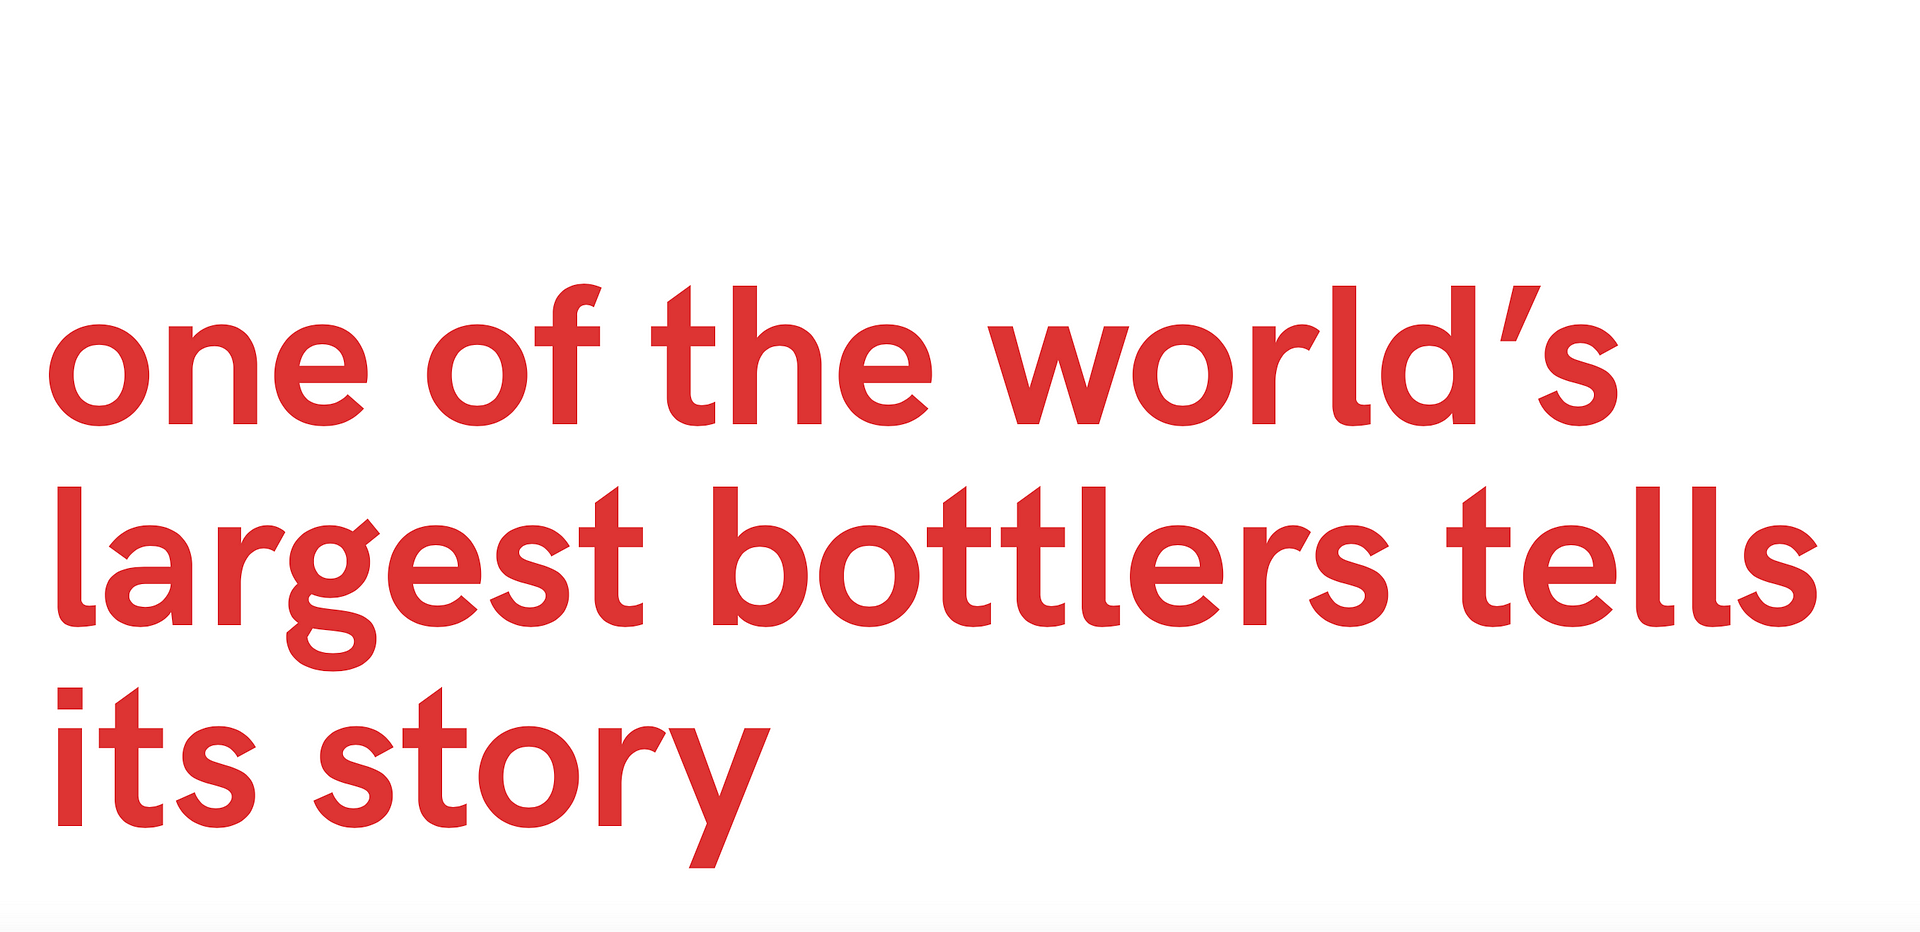 one of the world's largest bottlers tells its story